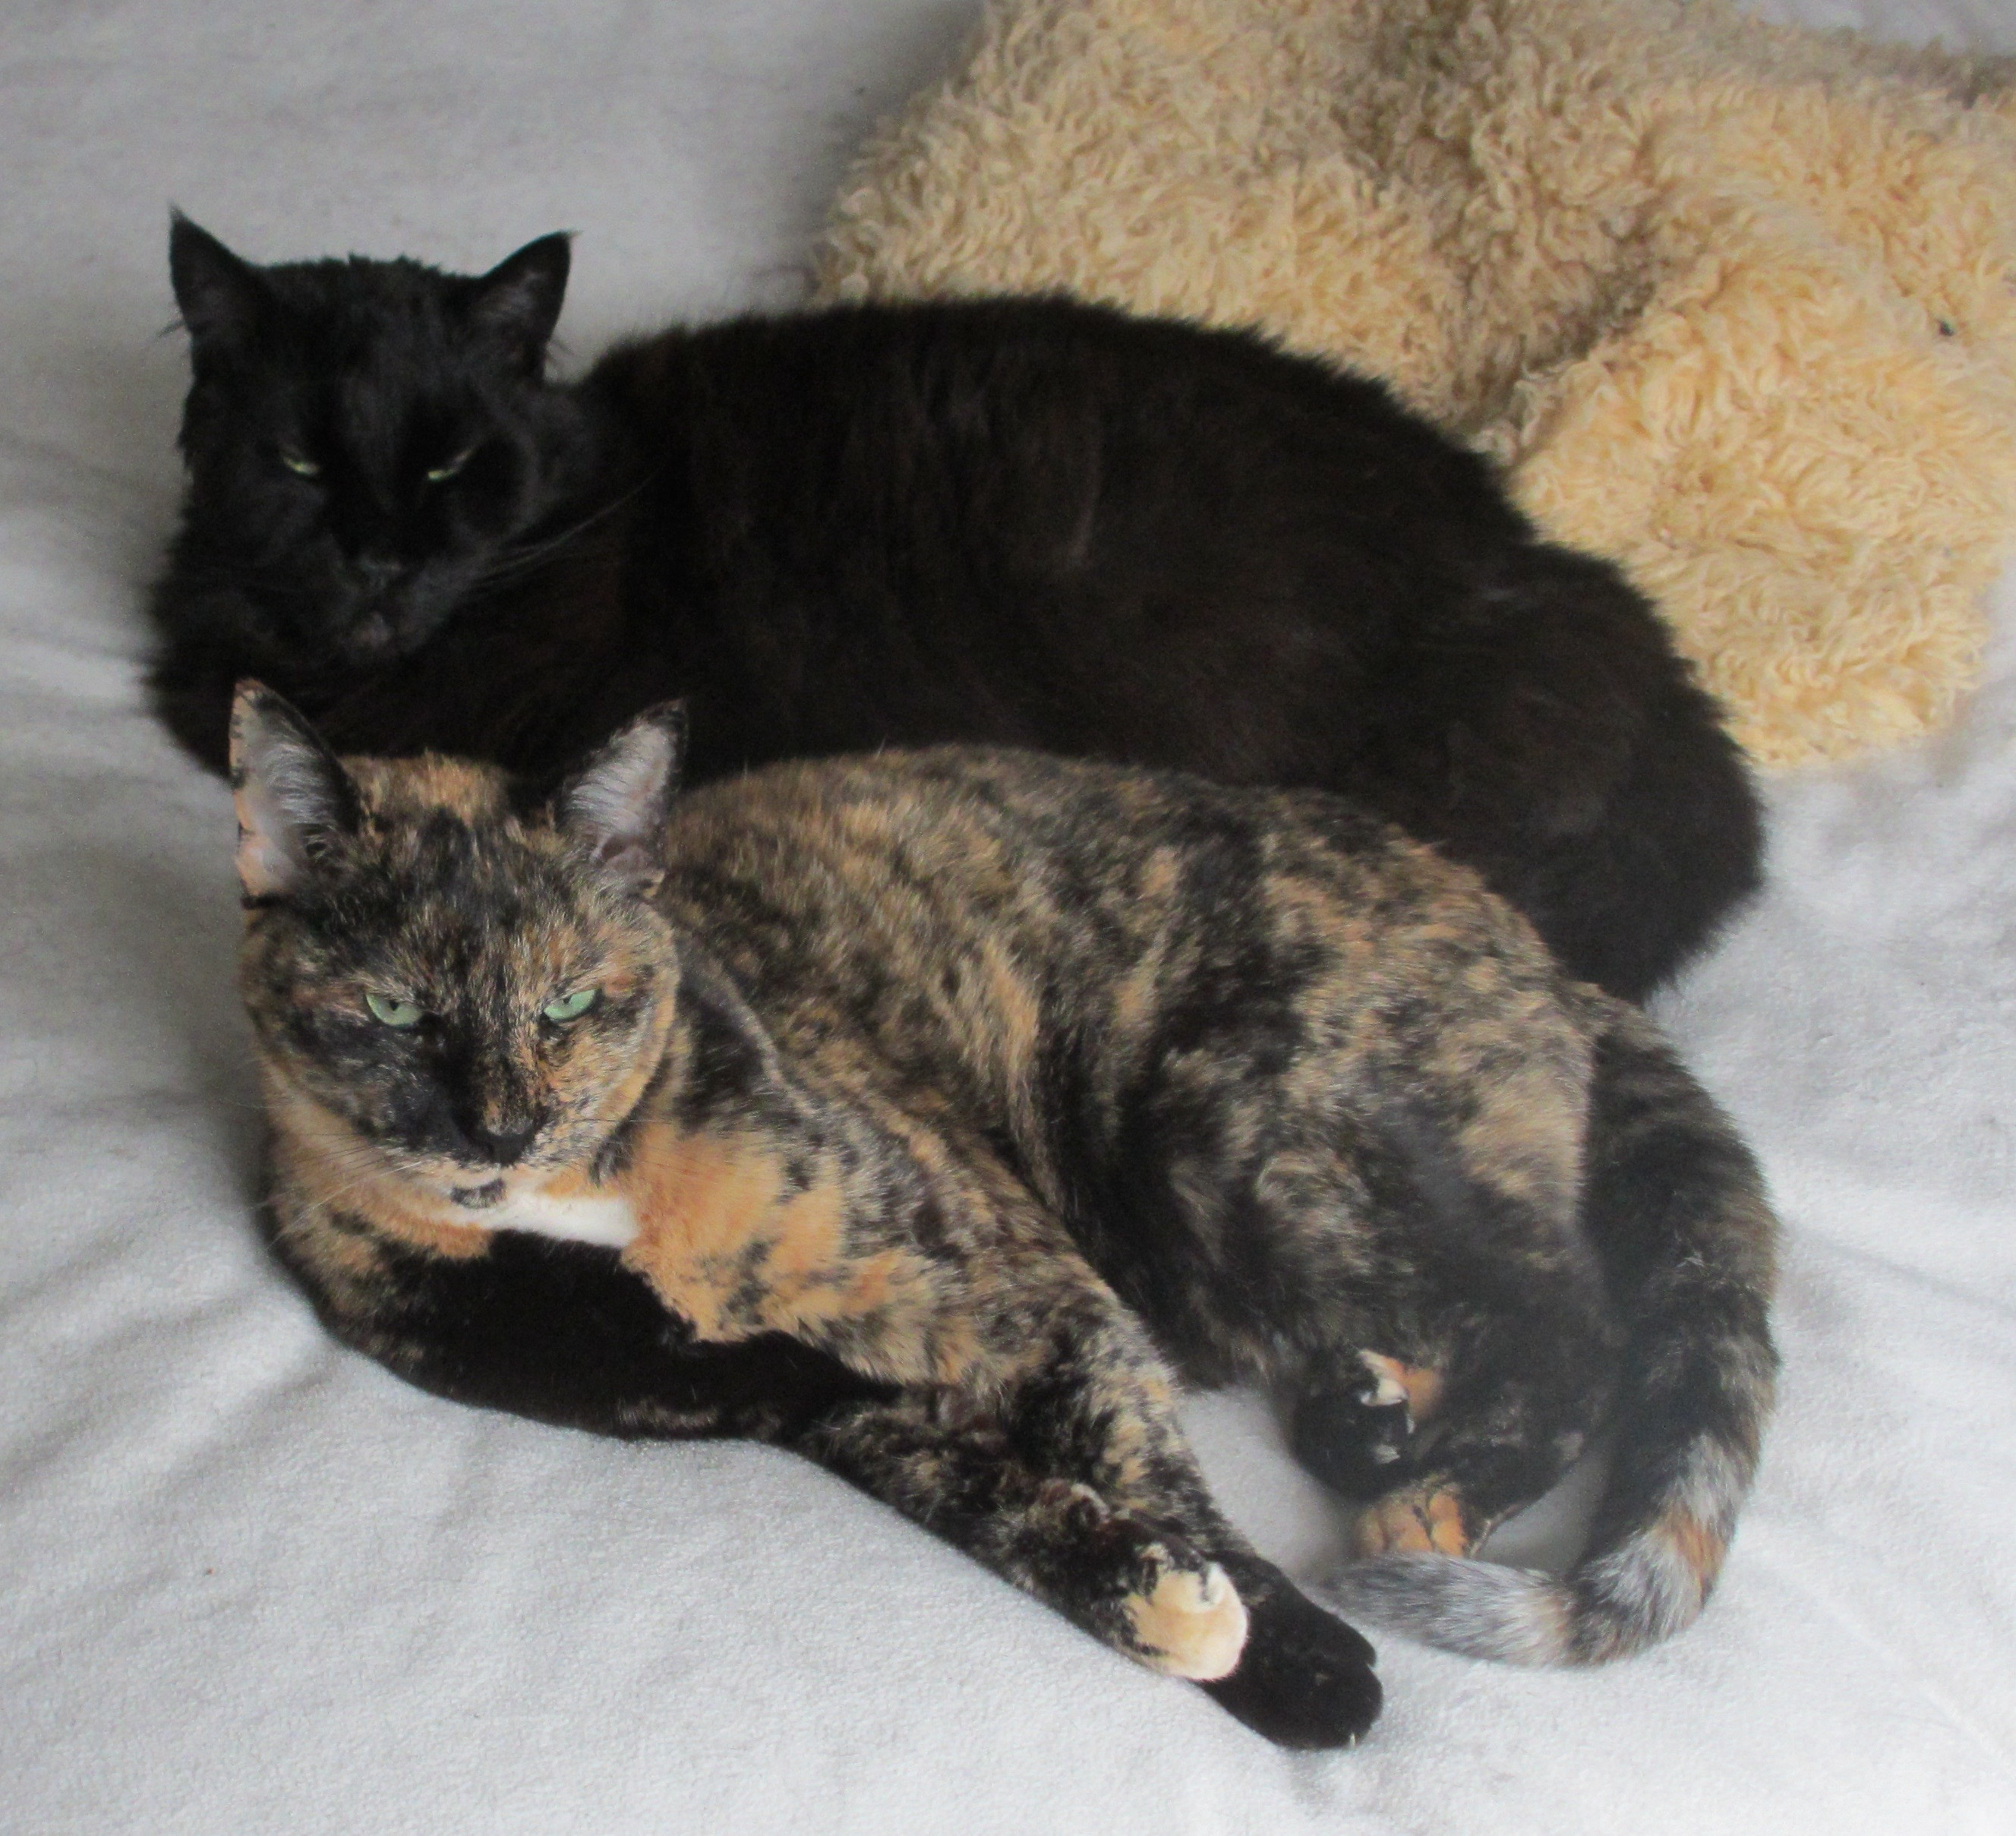 Two cats (one tortoiseshell, one black Maine Coon) curled up together, looking at the camera